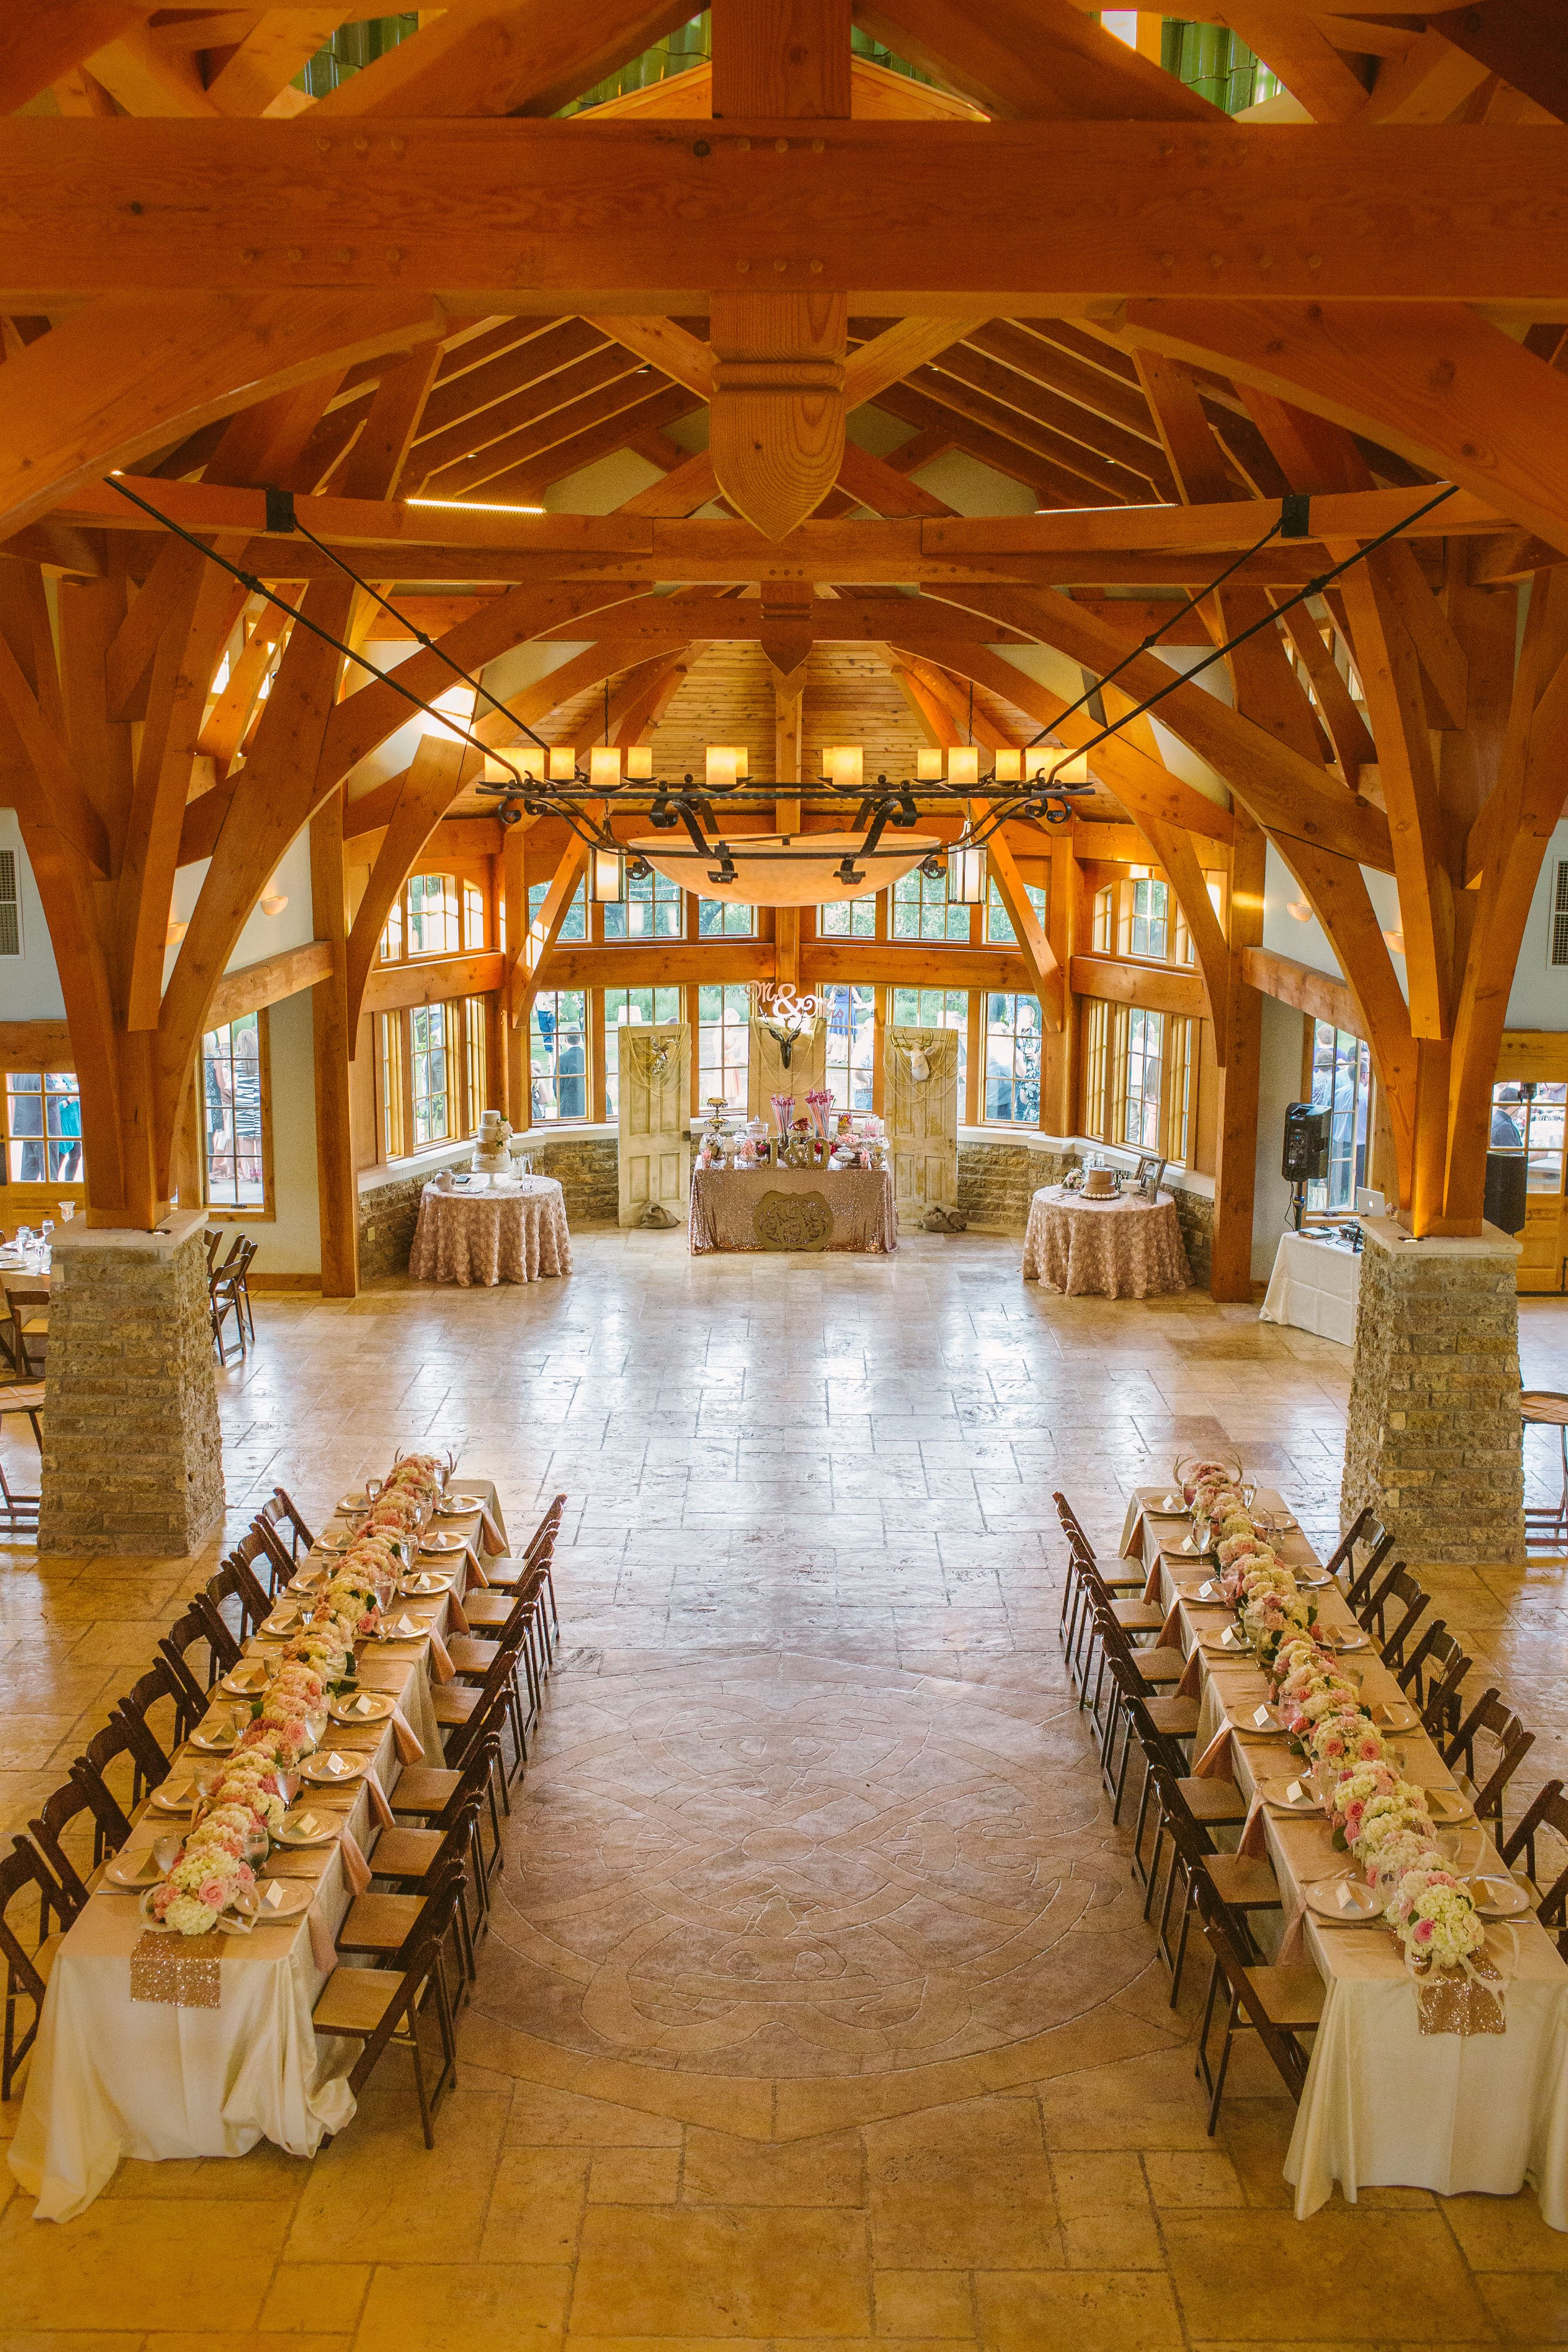 Beautiful setting for receptions and letting your guests